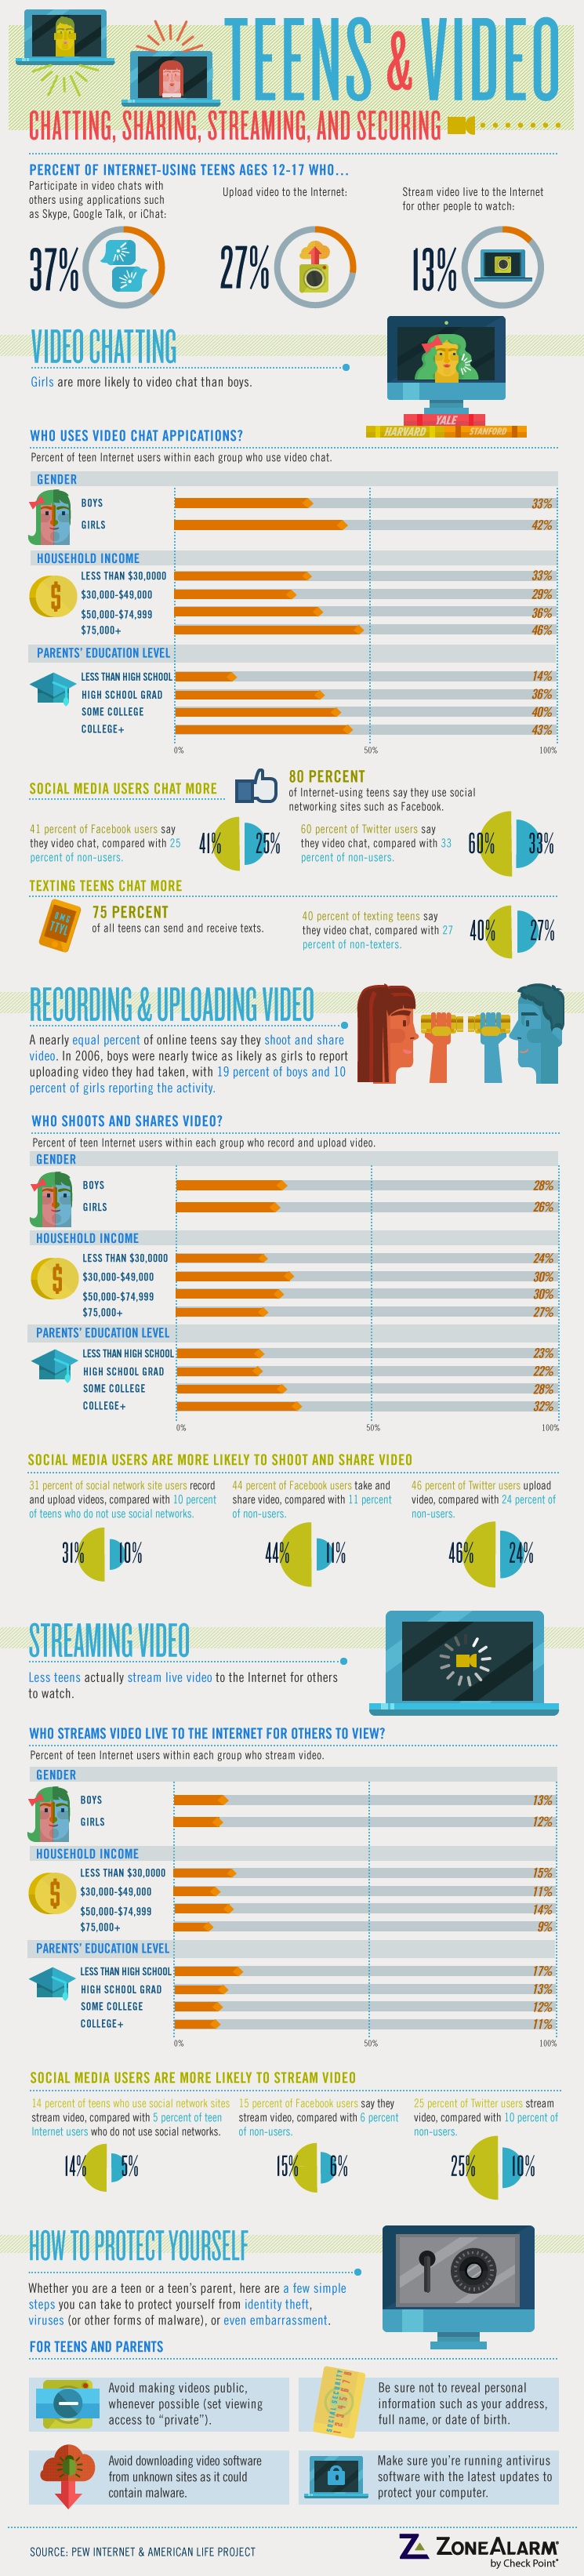 Check it out for a snapshot of how much teens use web video to share their ...